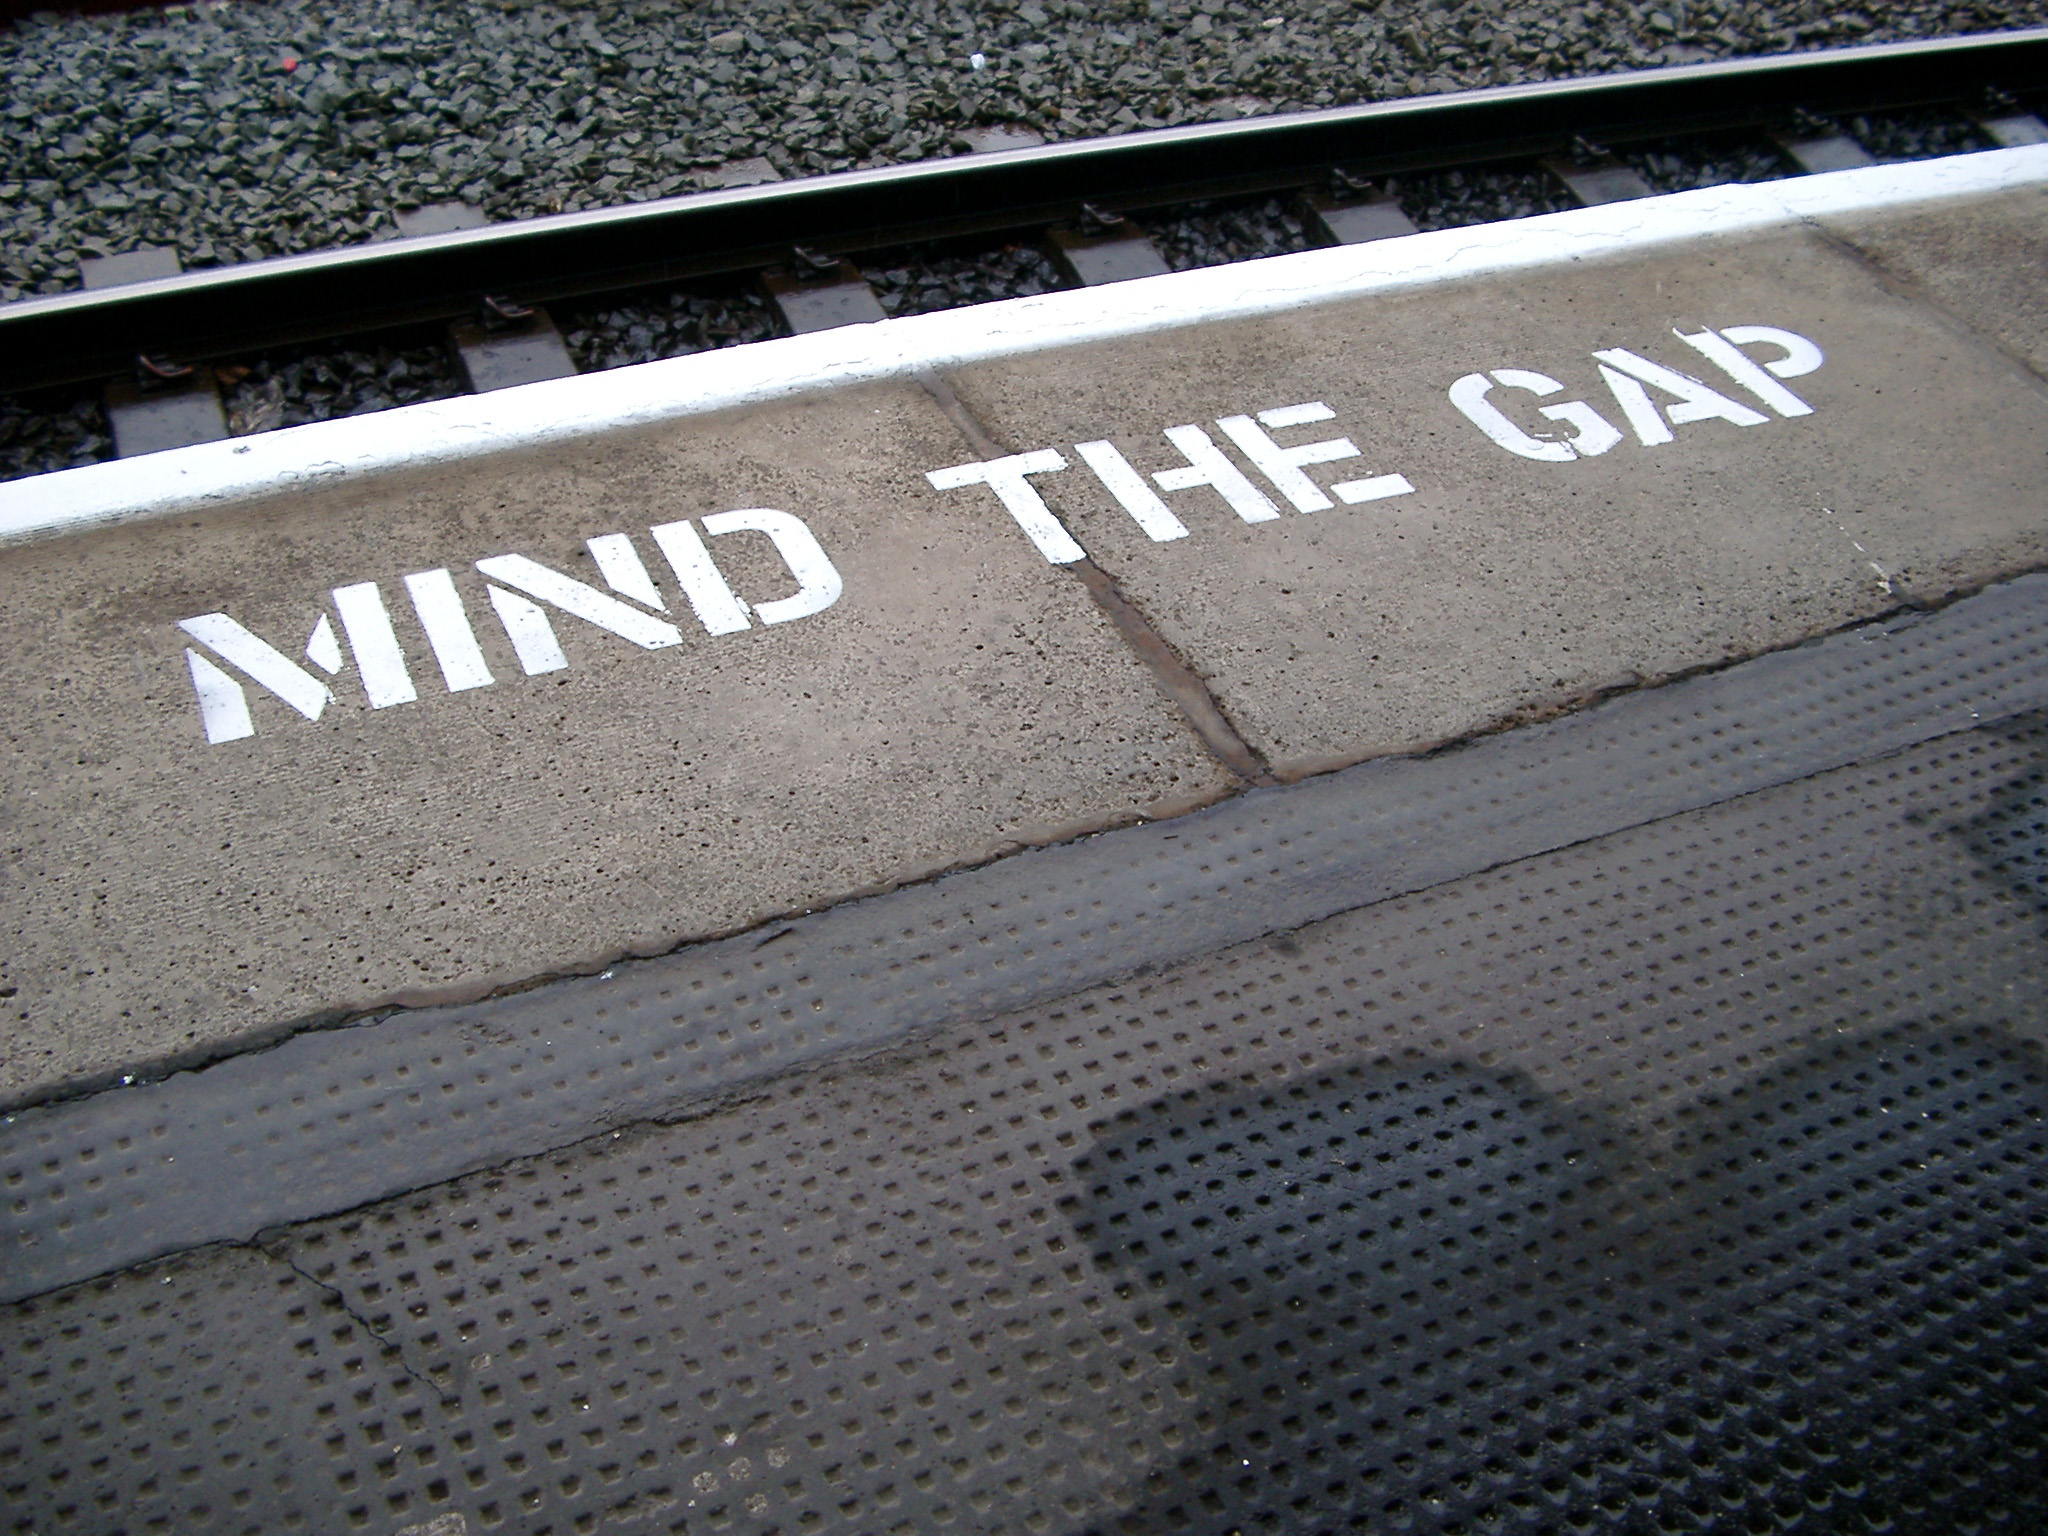 Platform edge at a train station with the warning - Mind The gap - painted in white on the edge of the tracks